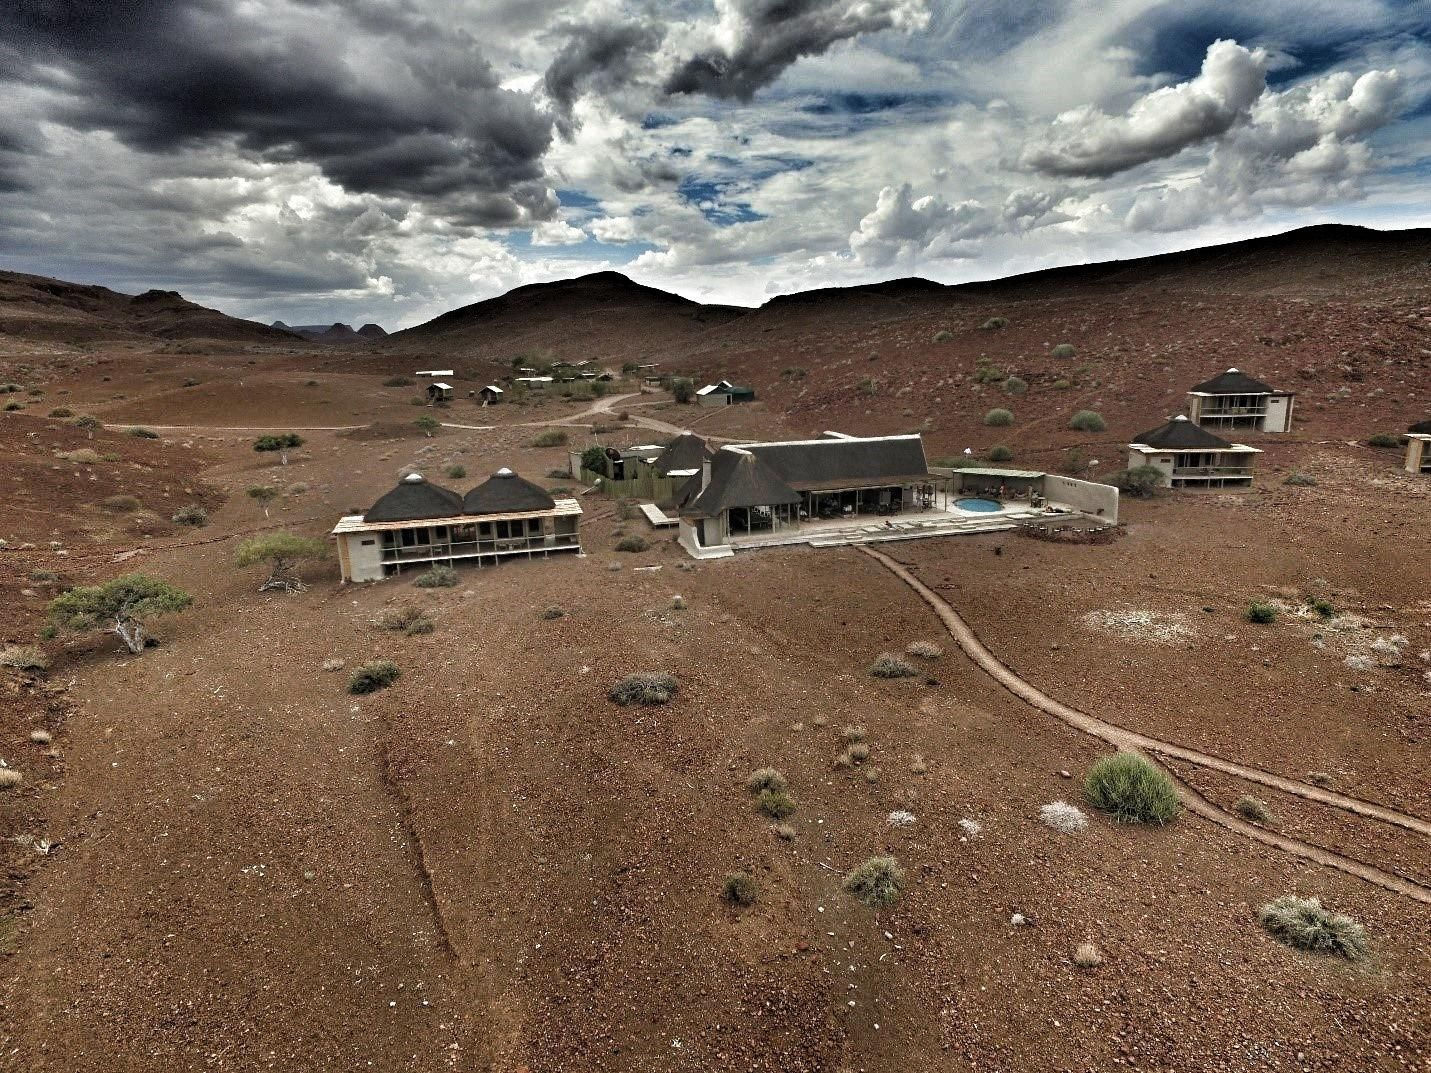 Damaraland Camp is situated in the Torra Conservancy an